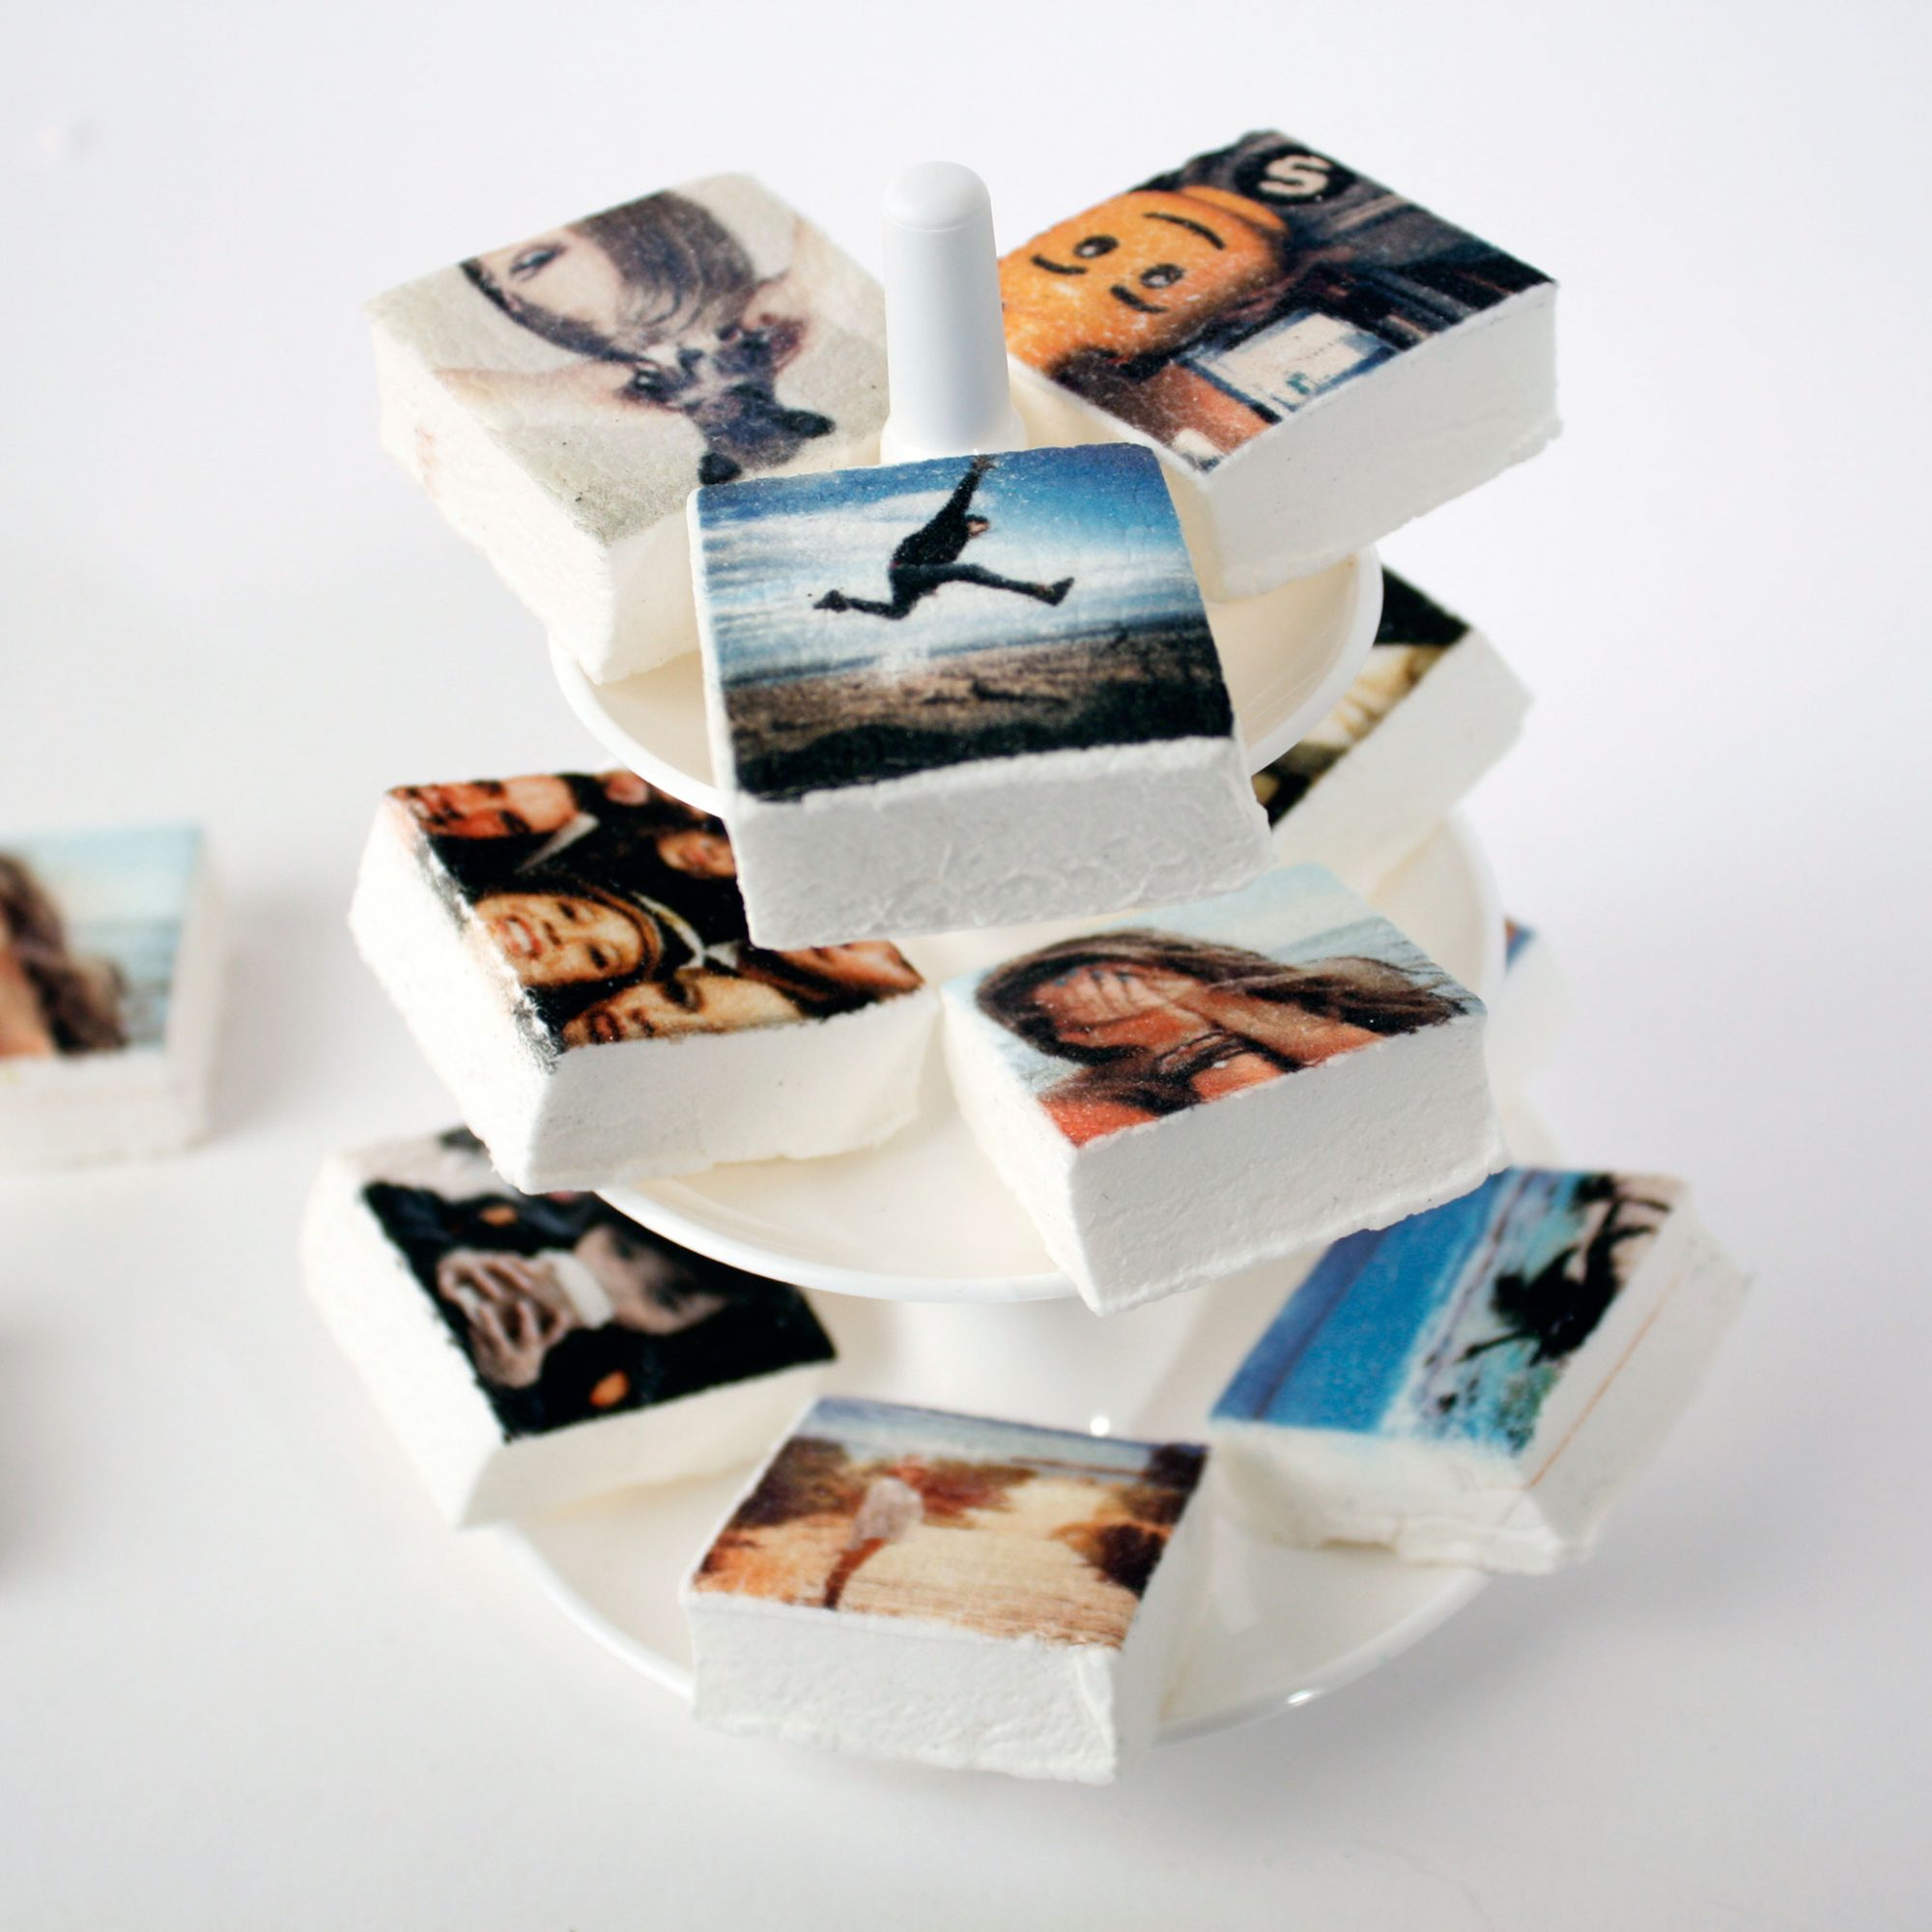 FWX CUSTOM MARSHMALLOWS FROM KATE MIDDLETONS BROTHER BOOMF STACK